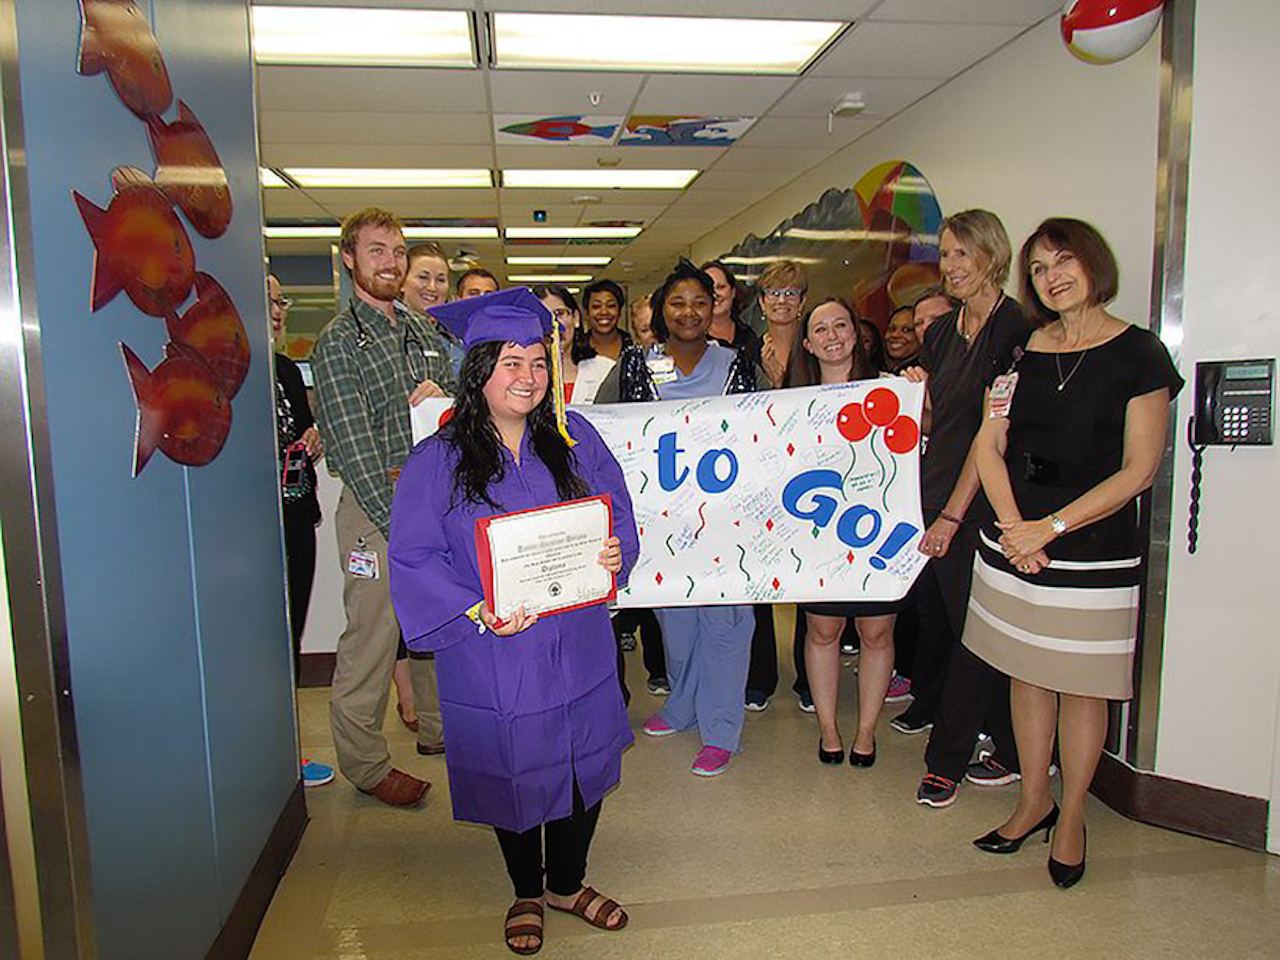 Taylor Deluna holds her diploma after being surprised by UTMB Children's Hospital staff.